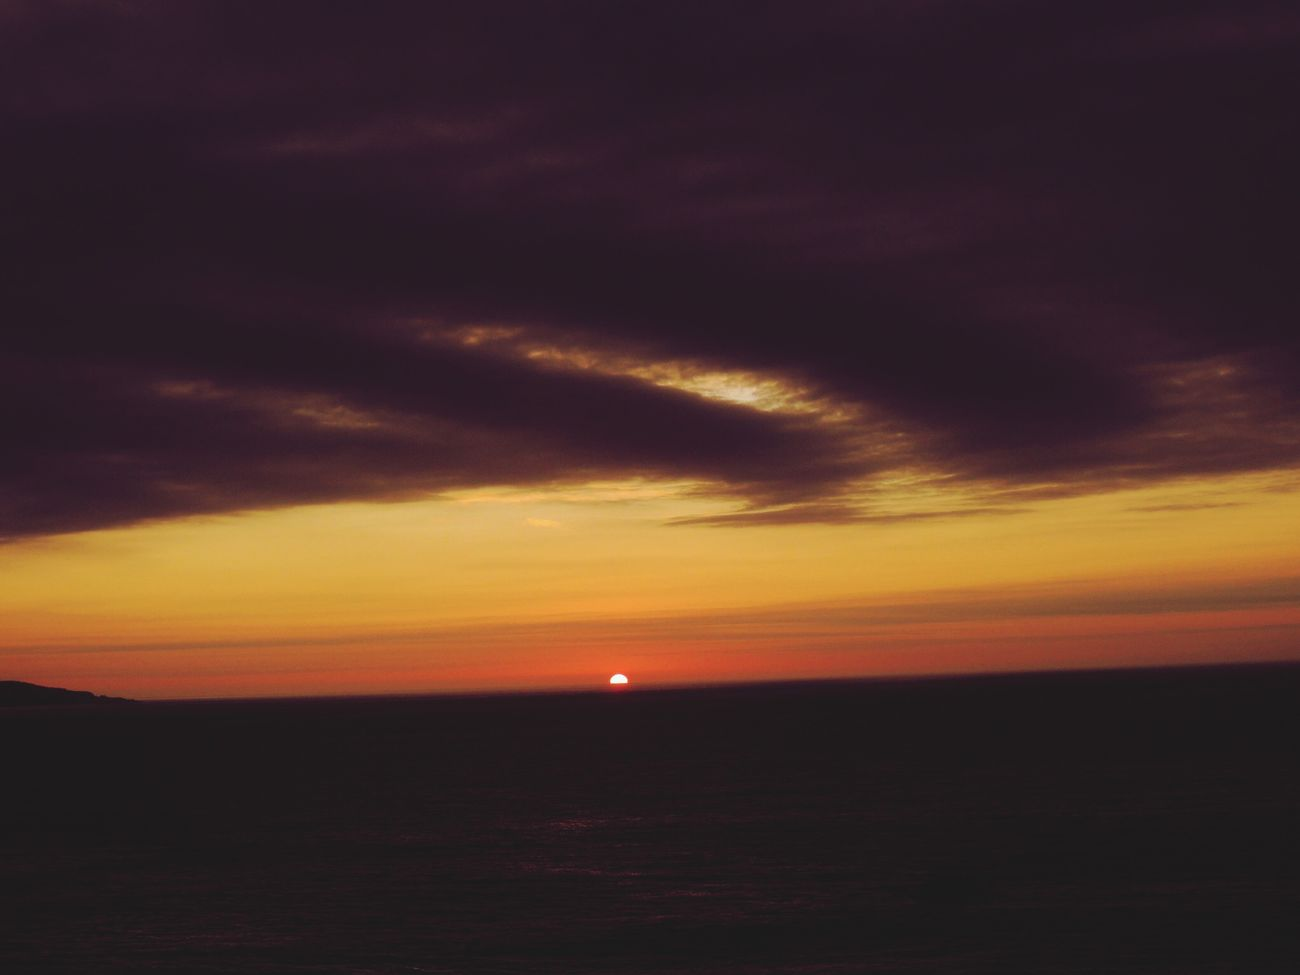 Sunset Today Sunset_collection Sunset #sun #clouds #skylovers #sky #nature #beautifulinnature #naturalbeauty #photography #landscape Sunset_captures Skyporn Cloudsporn Dramatic Sky Sea And Sky EyeEm Sunset How Do You See Climate Change? Reñaca Beach , Chile